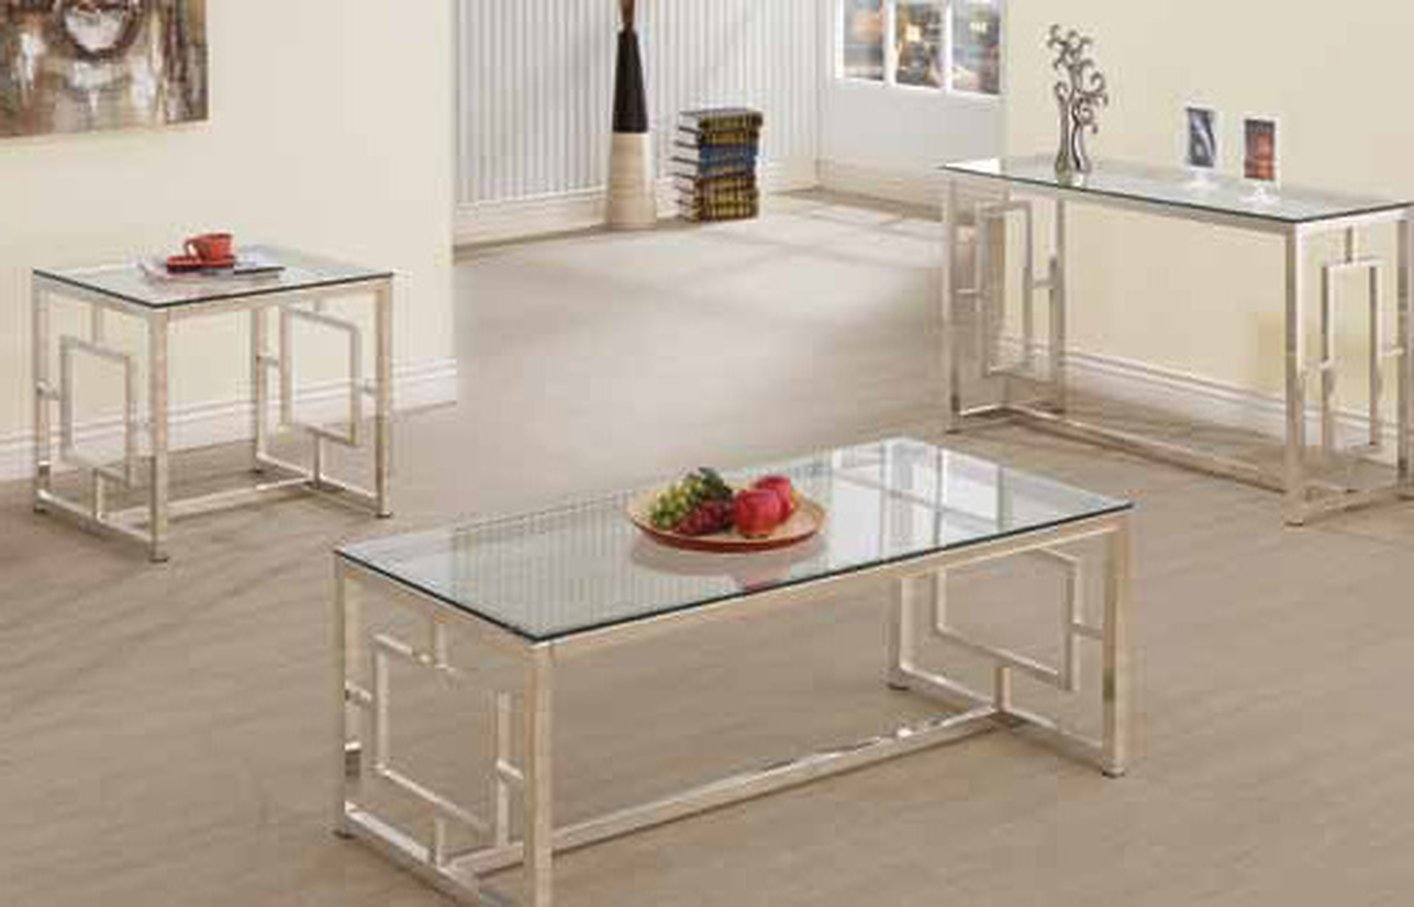 Silver Glass Coffee Table Silver Glass Coffee Table ... & Silver Glass Coffee Table - Steal-A-Sofa Furniture Outlet Los Angeles CA